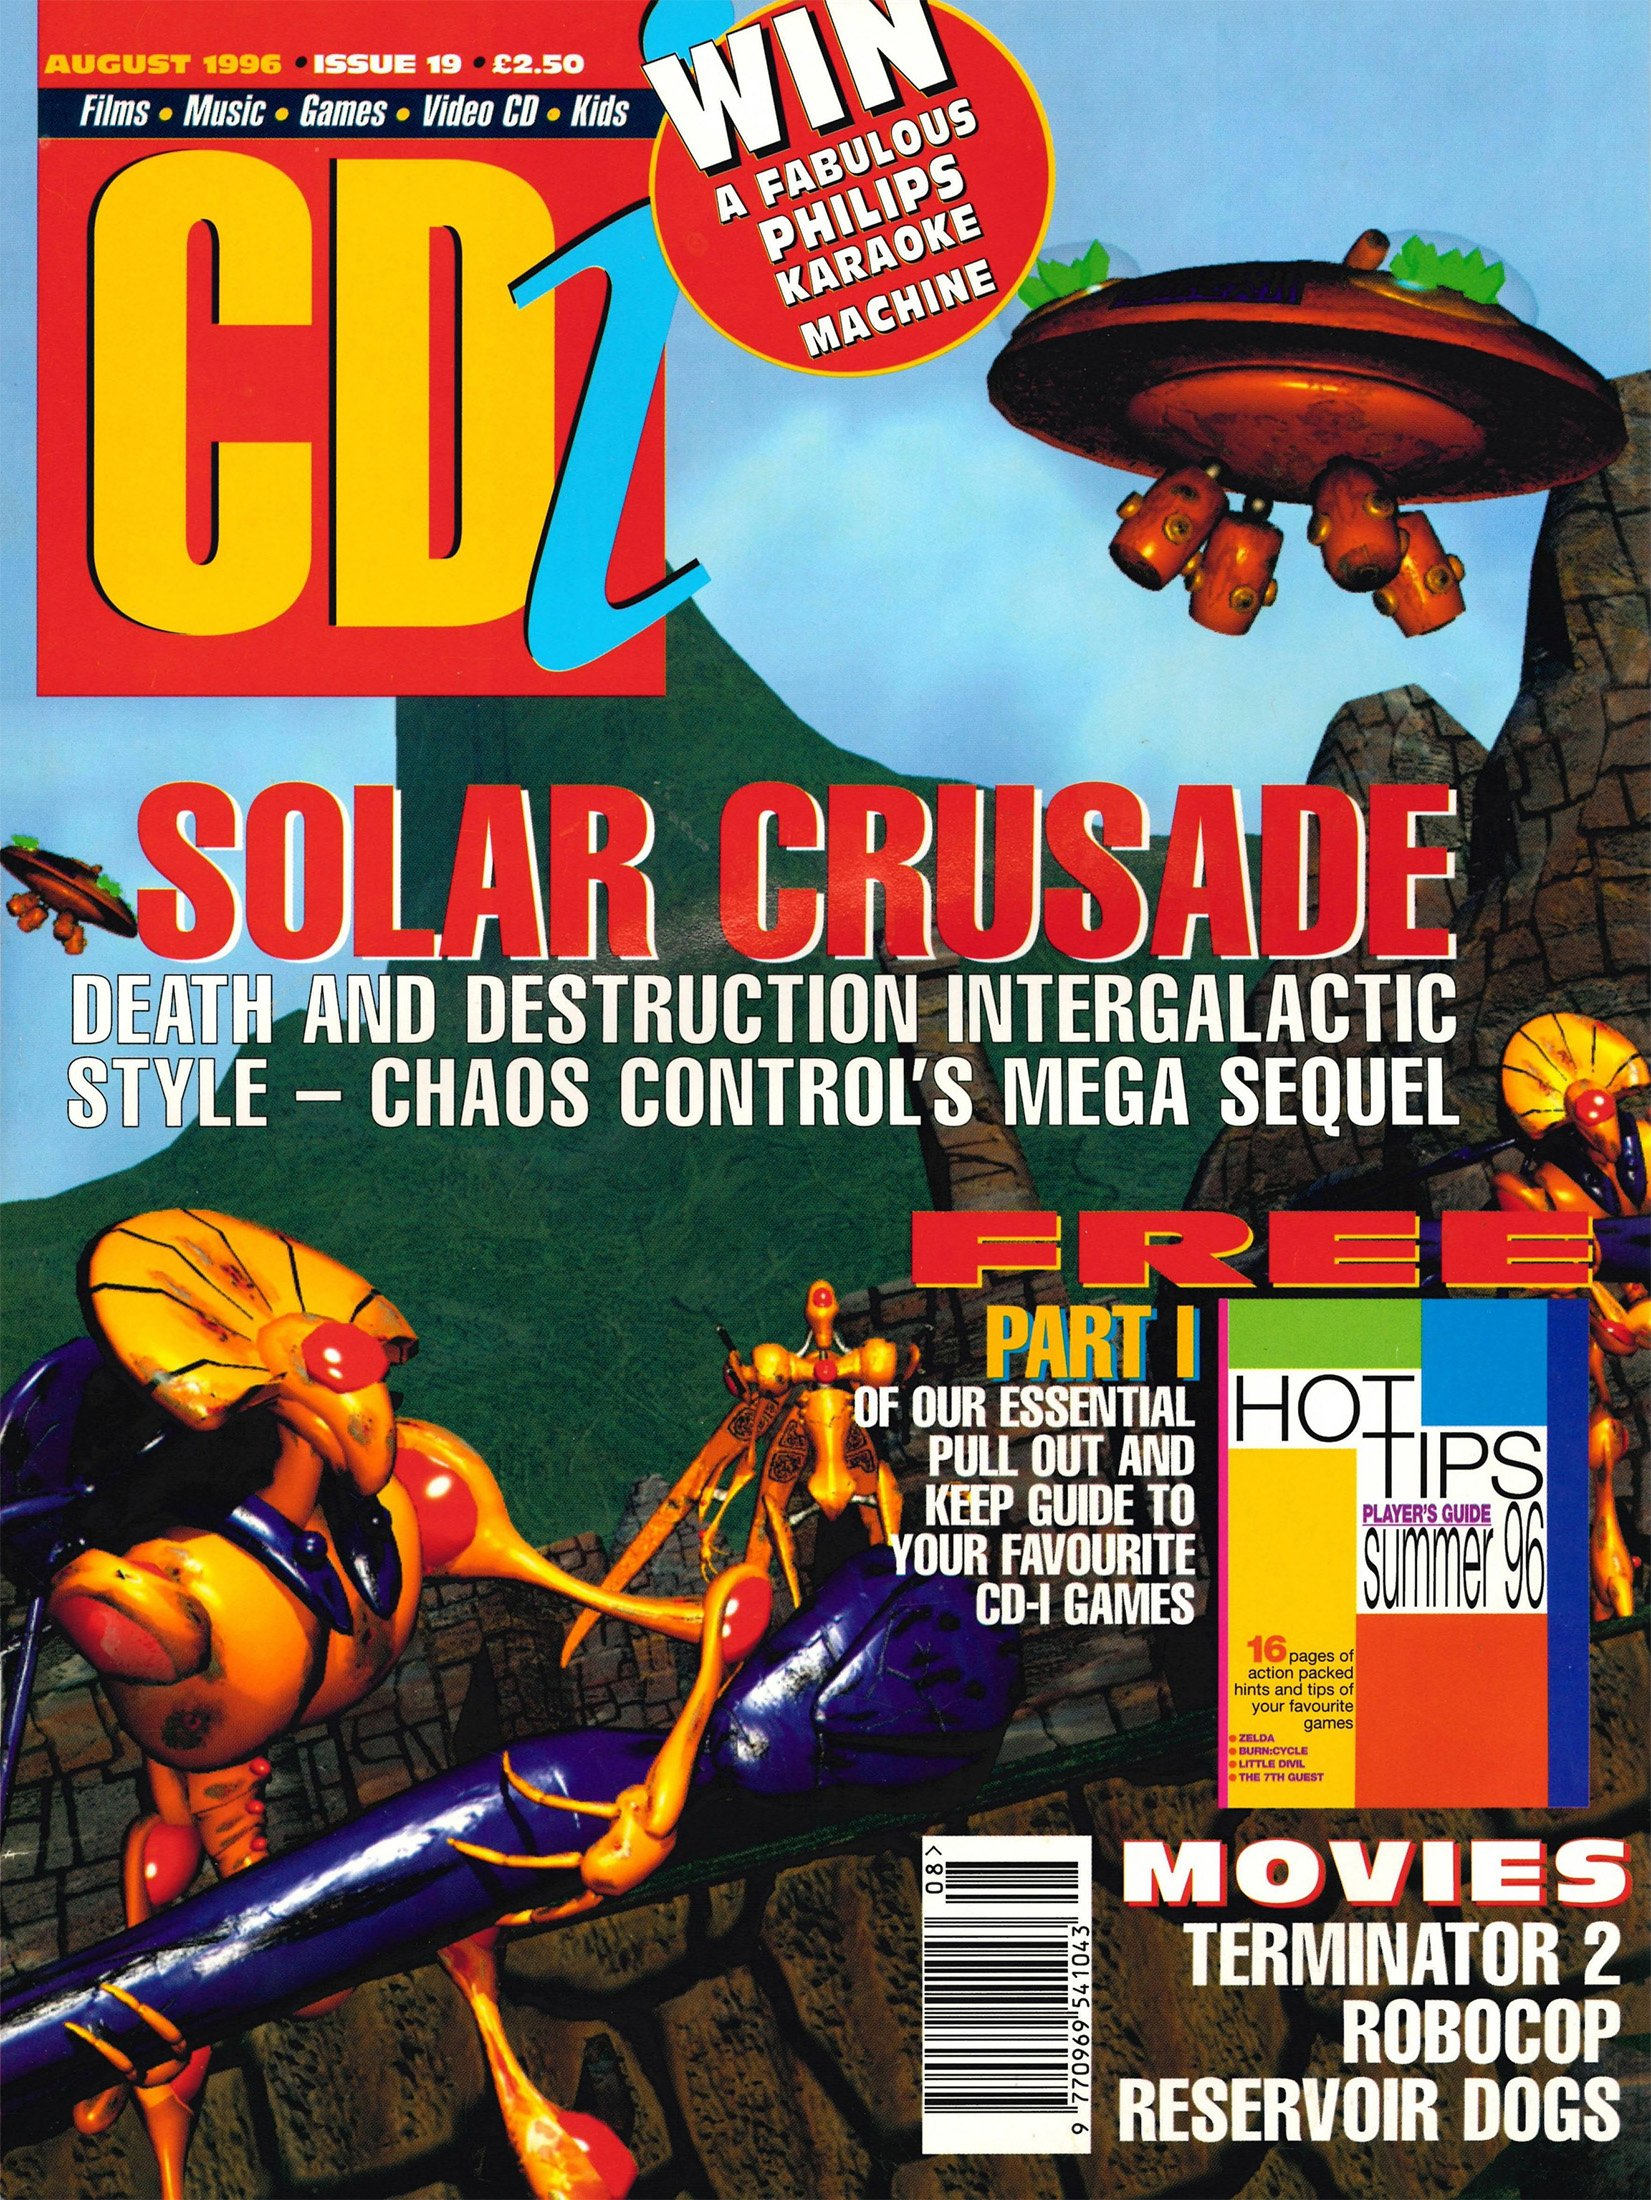 CDi Issue 19 (August 1996)